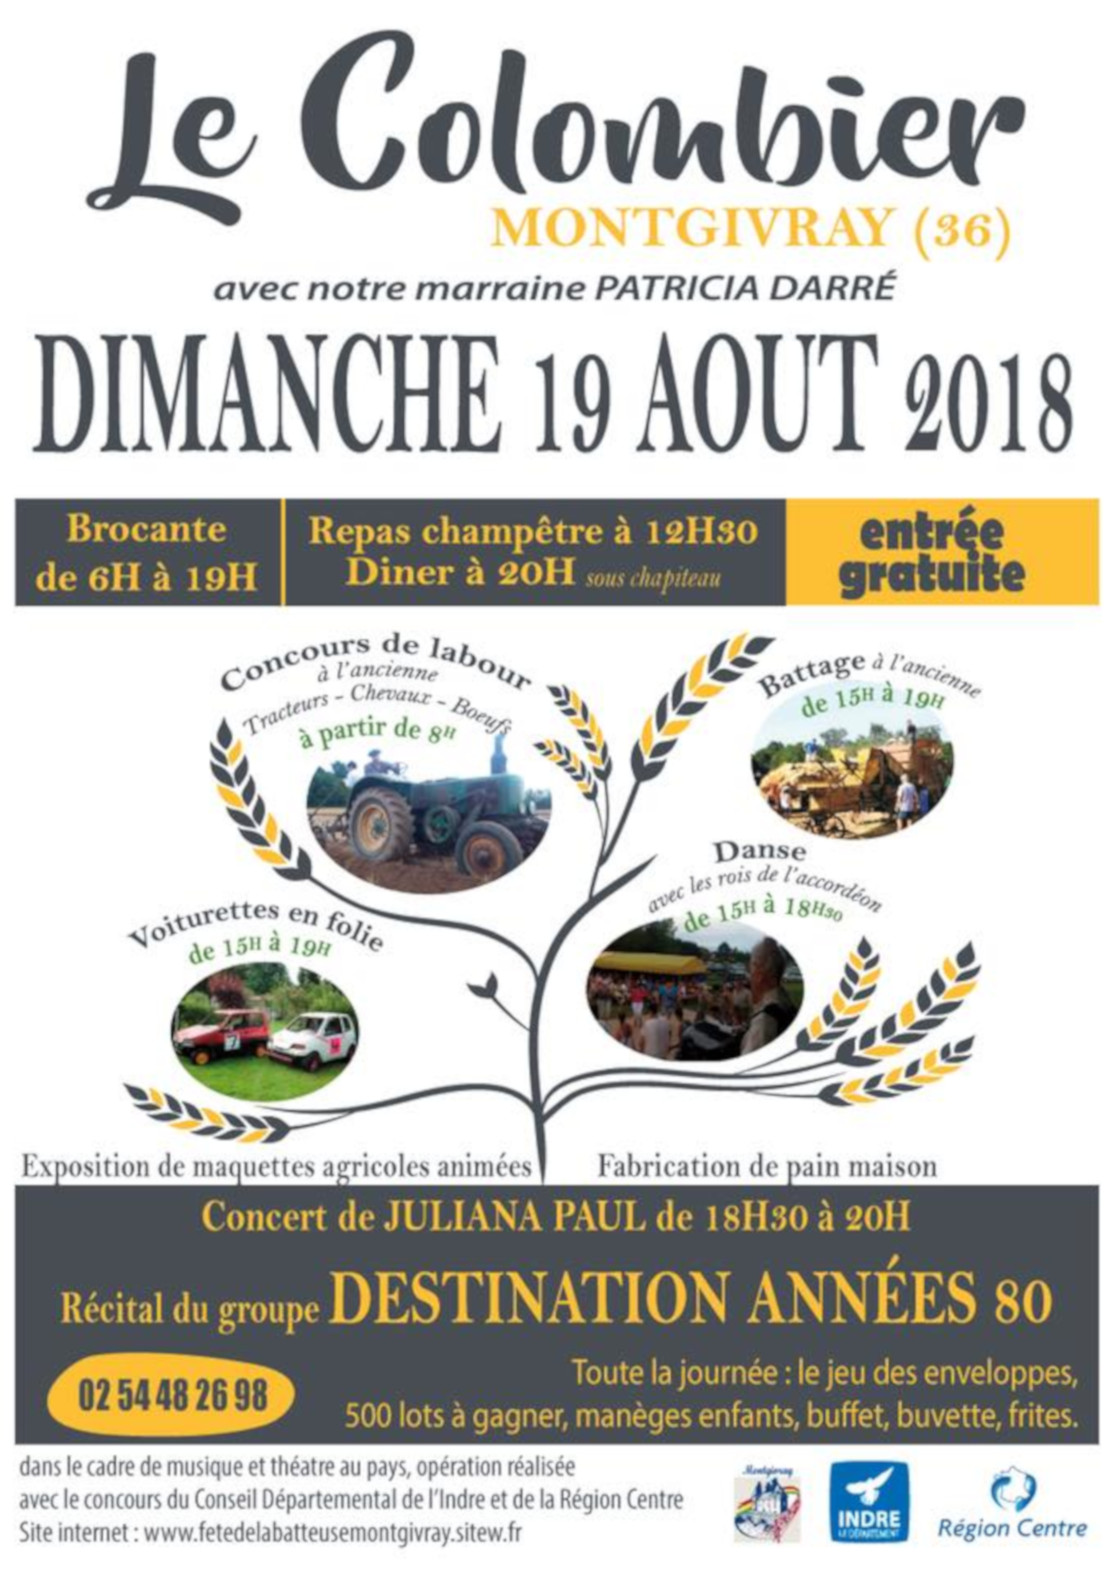 fete_colombier_montgivray.xcf